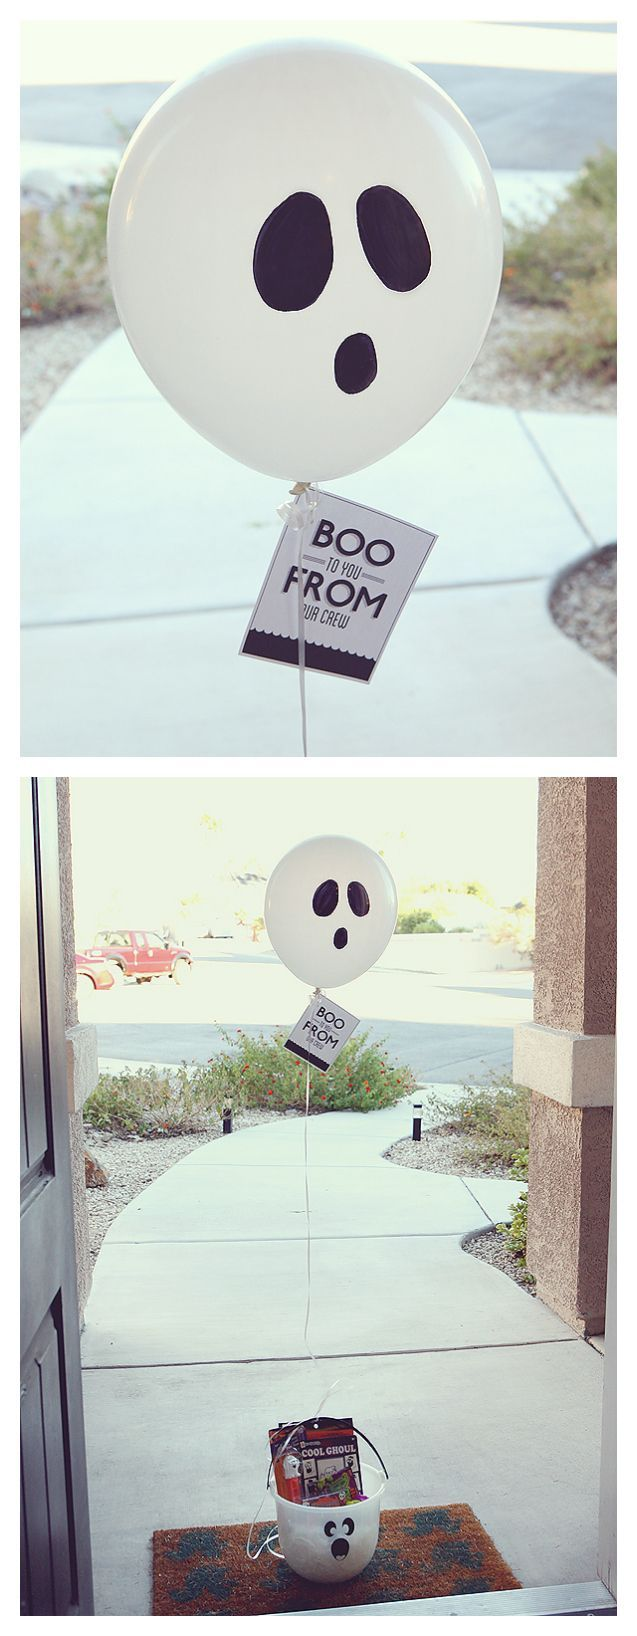 Boo to You - Draw a simple ghost face on the balloon with a Sharpie, then fill…